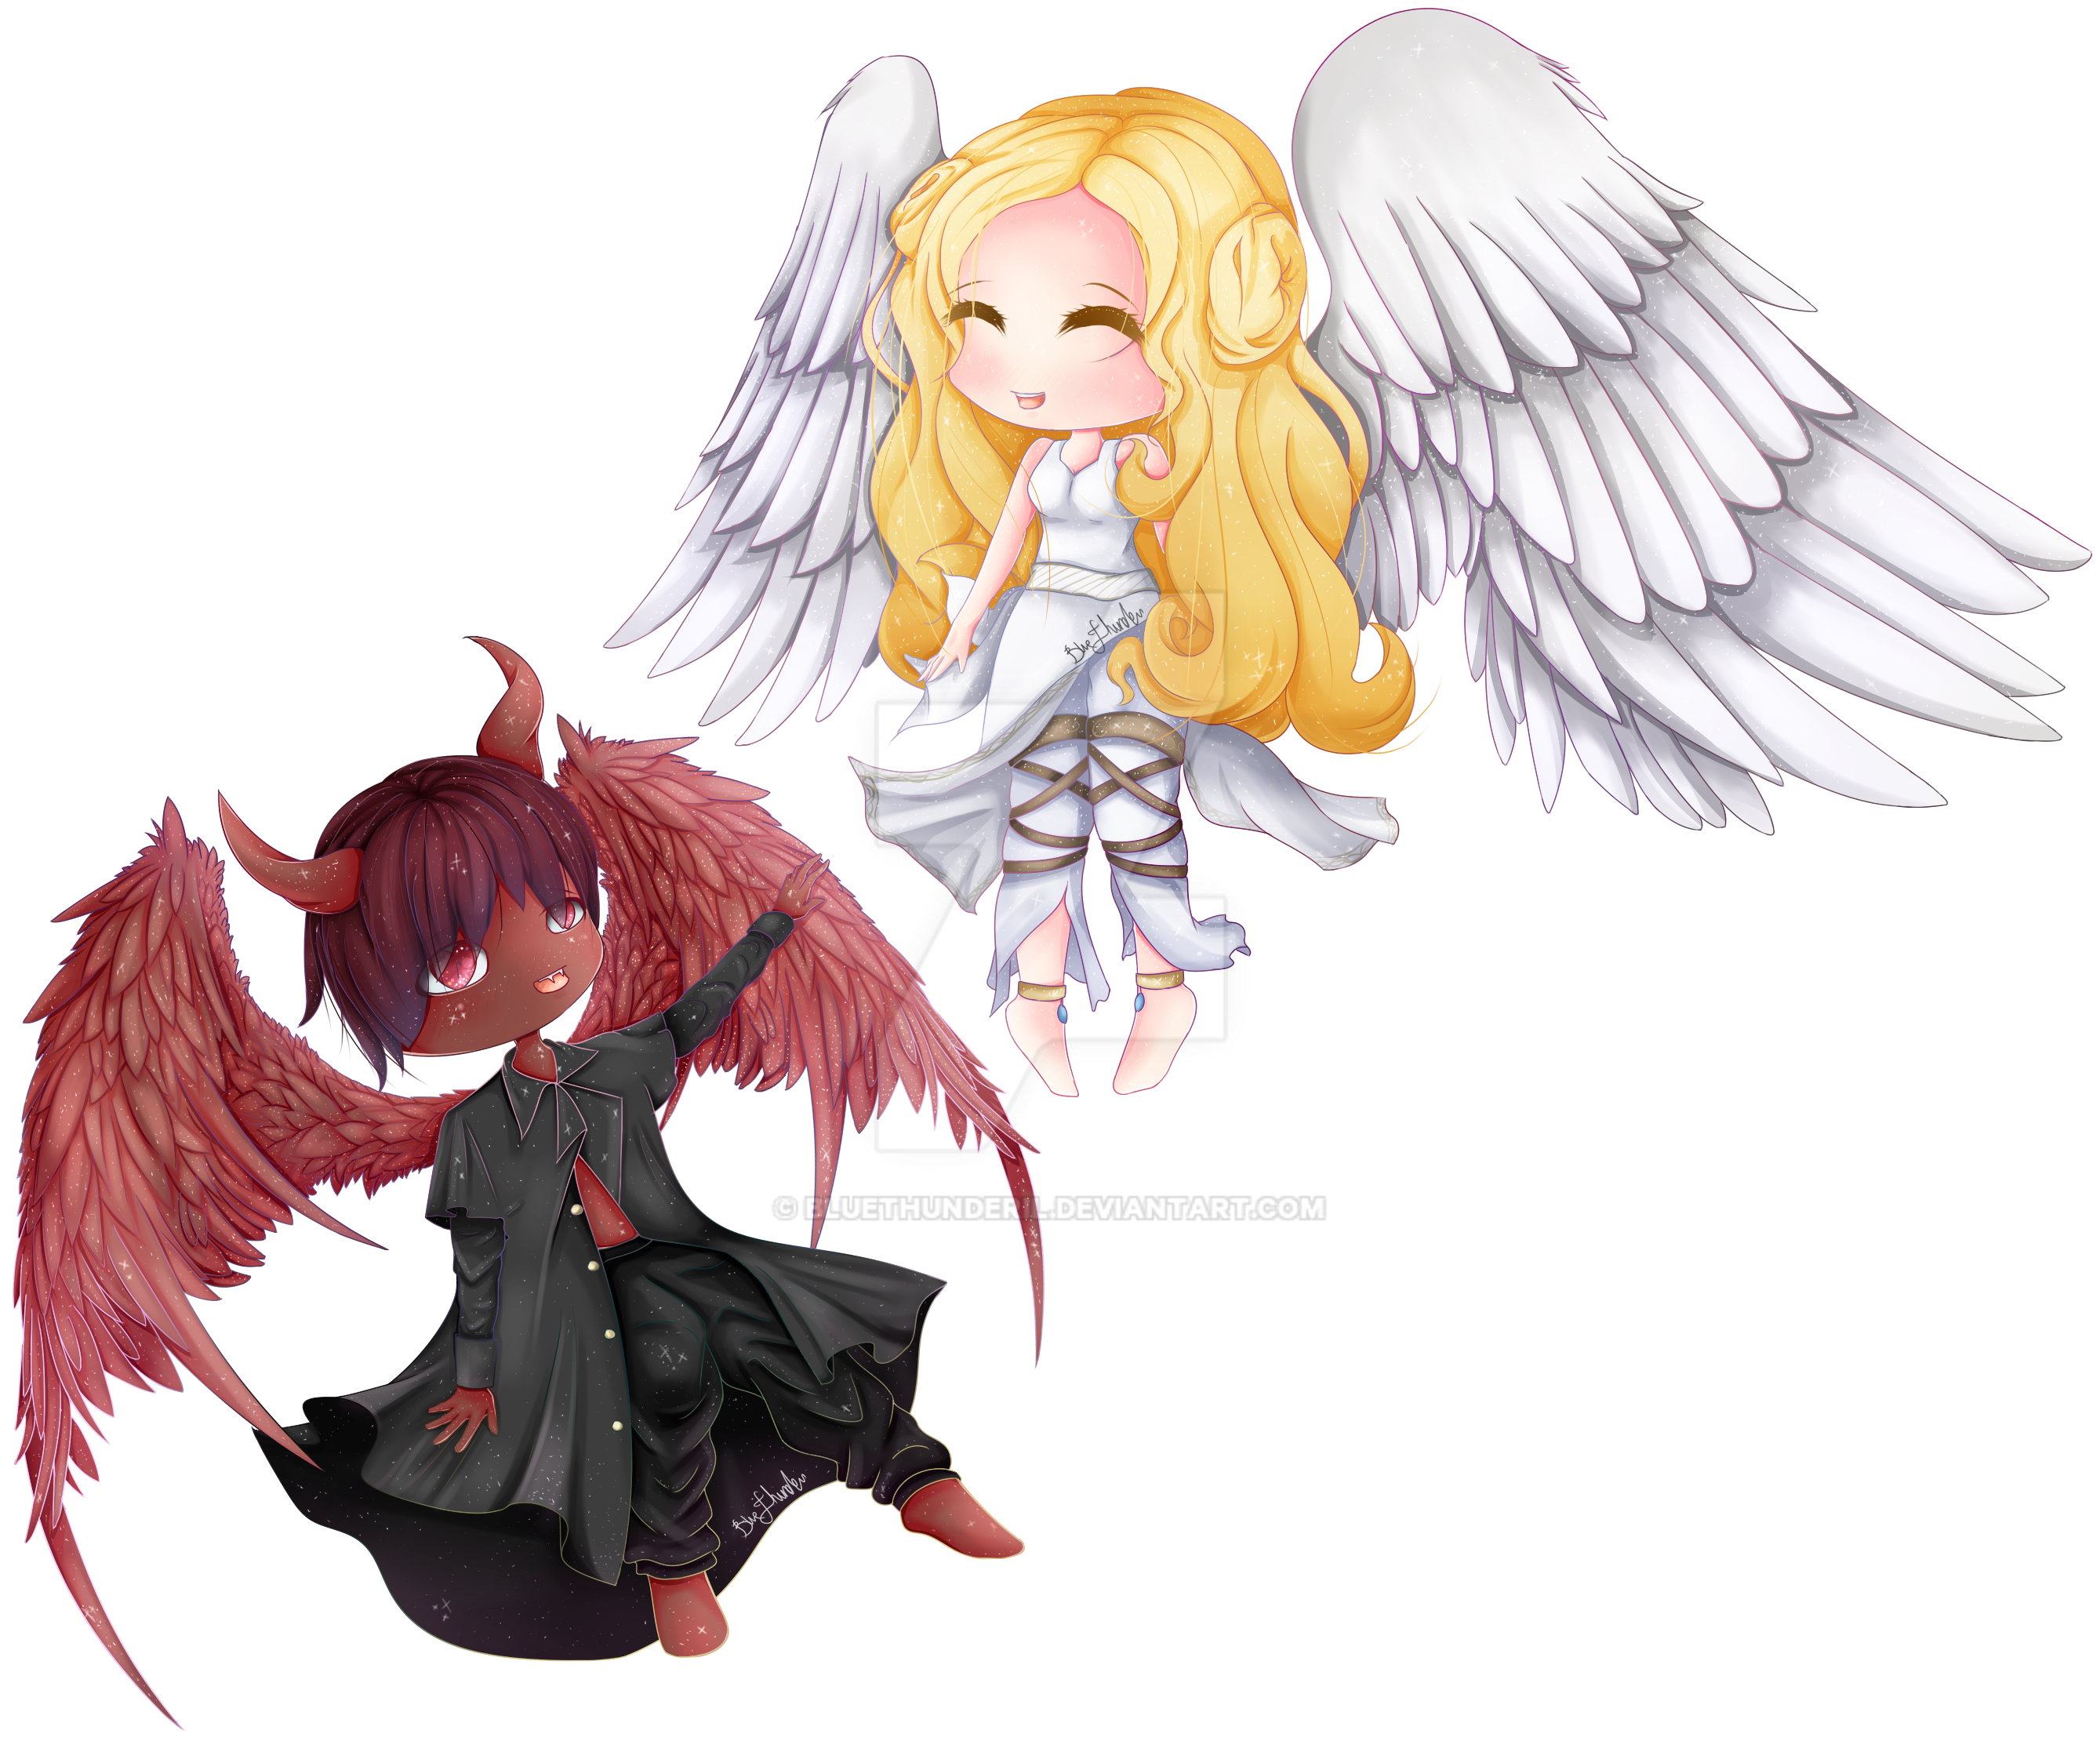 An Angel And A Devil In Love, 200 WATCHERS! By